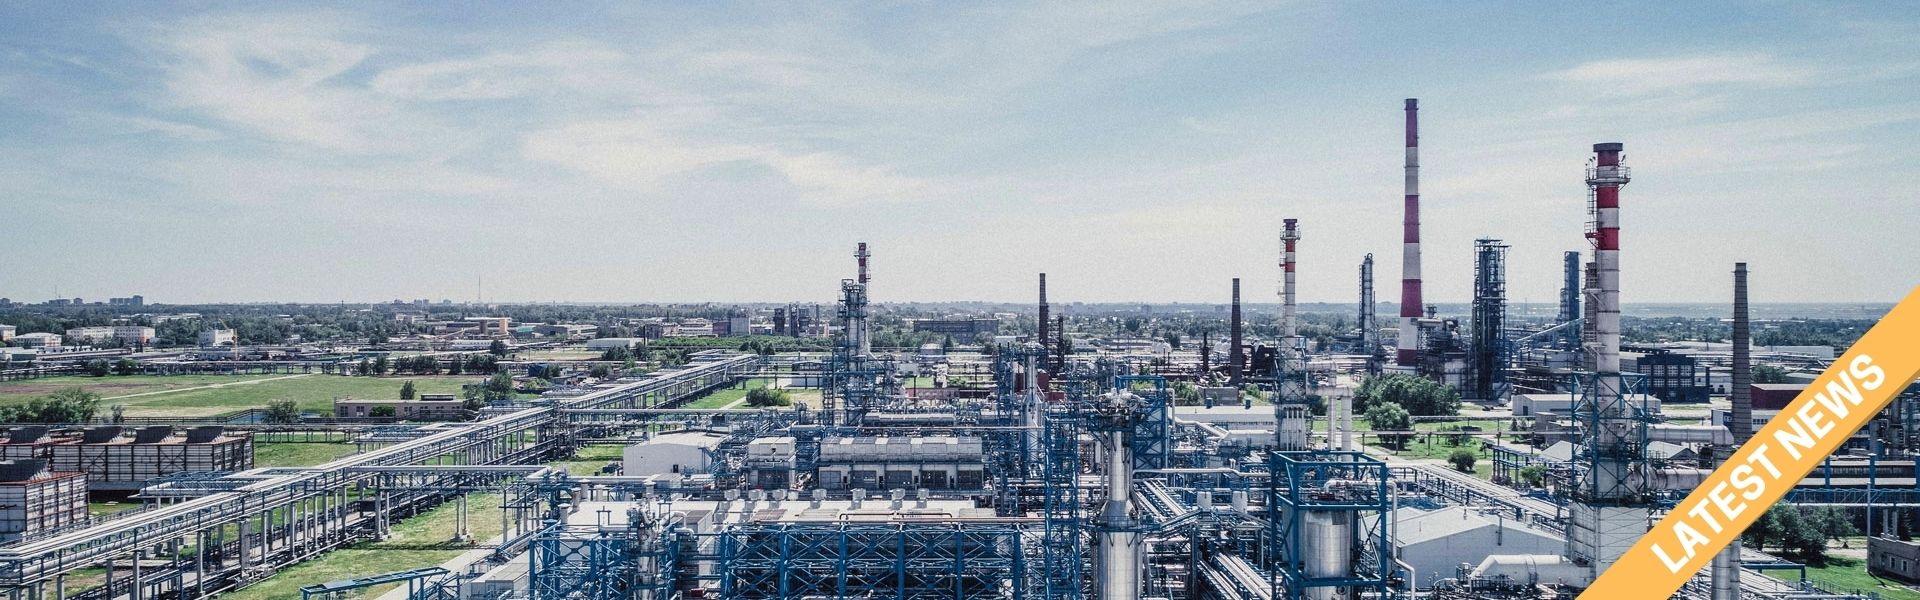 STOPSON ITALIANA VENT SILENCERS TO SOUNDPROOF OMSK REFINERY IN RUSSIA